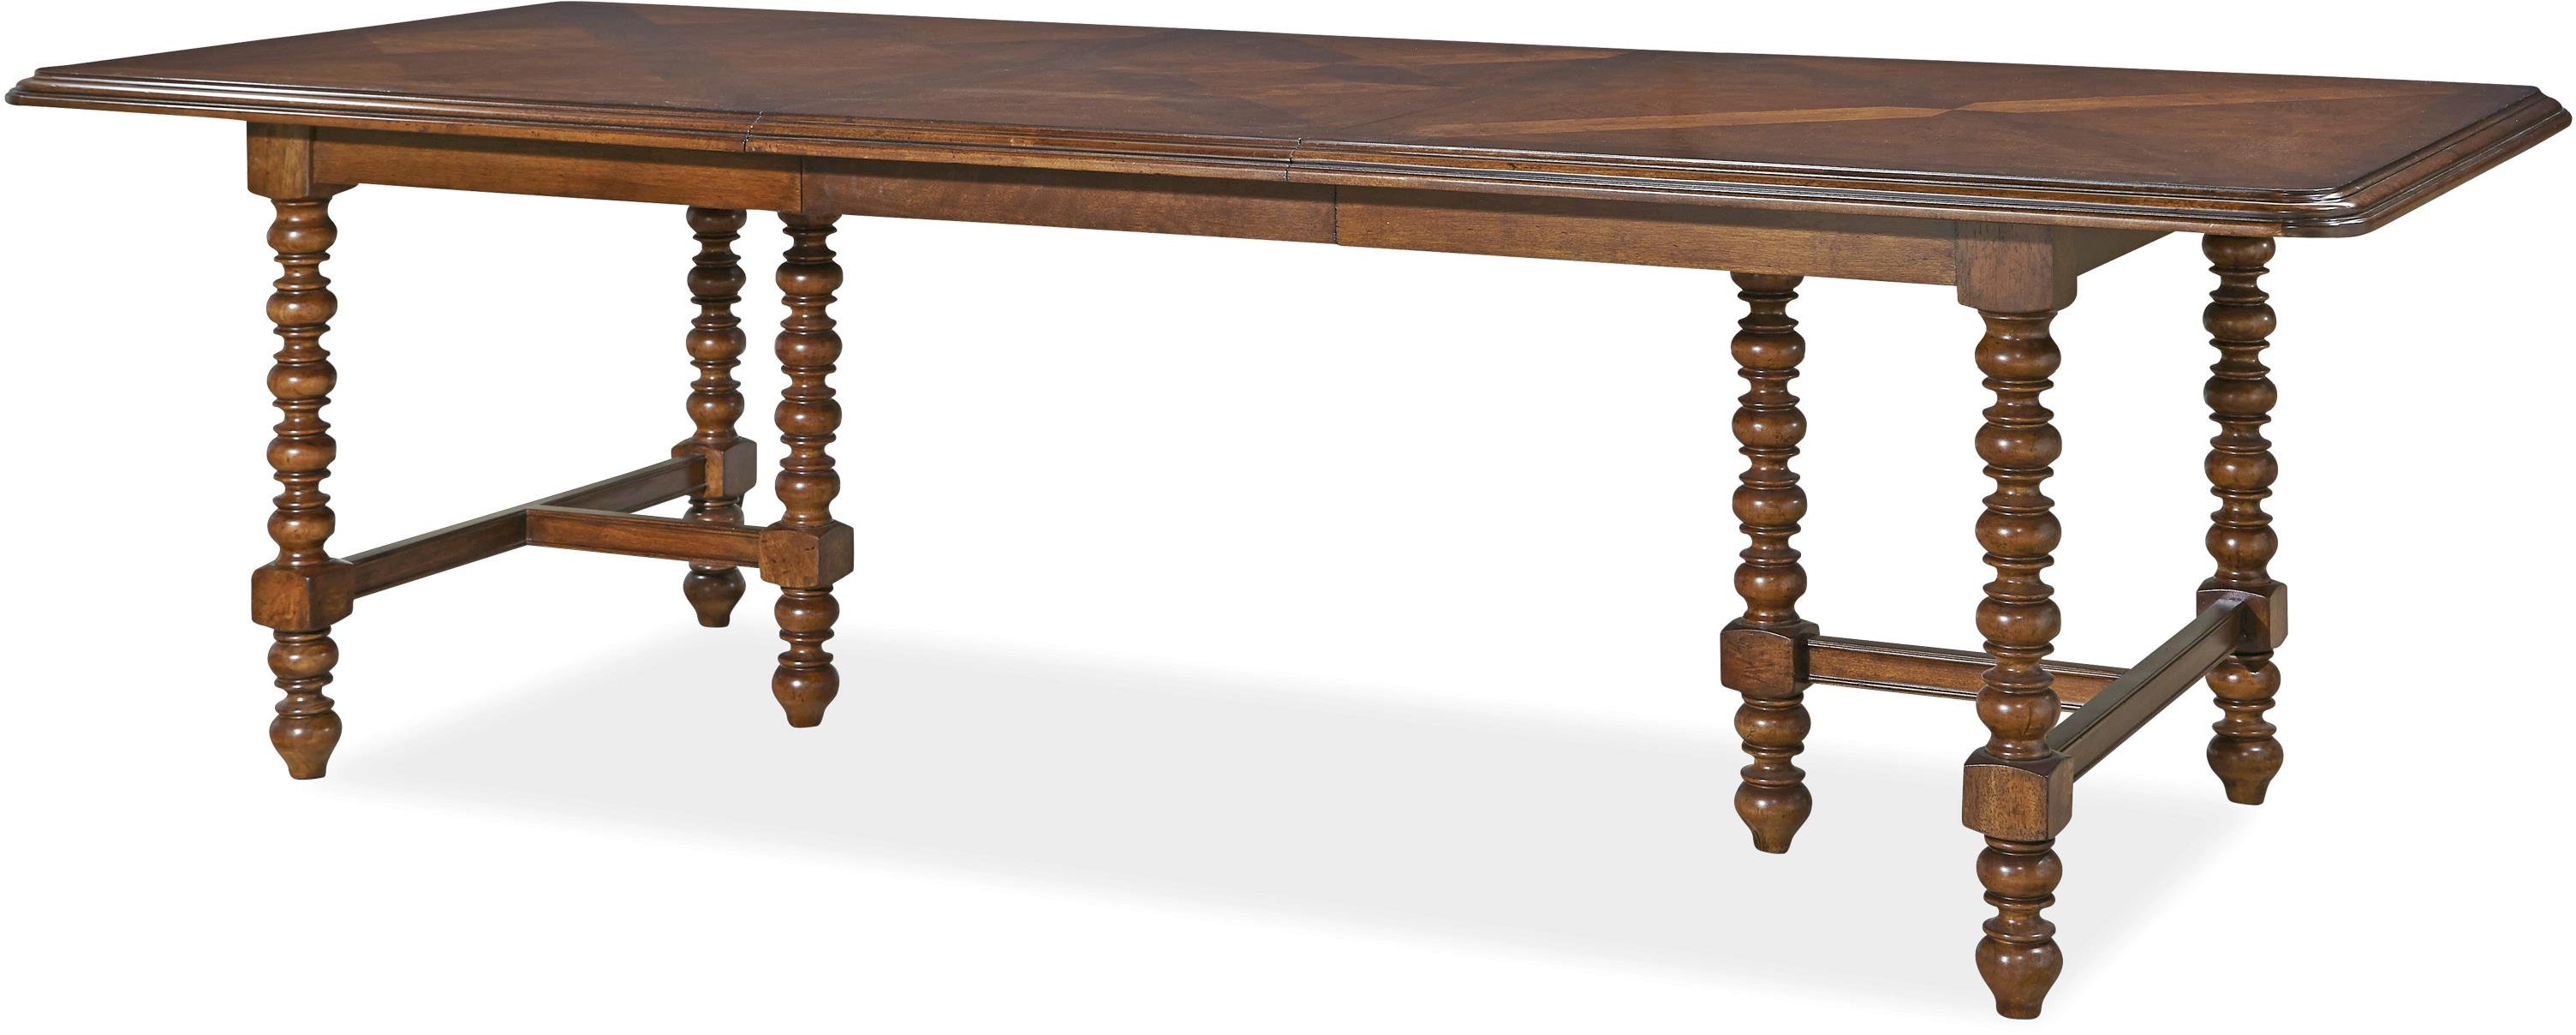 Fabulous Paula Deen Darling Darling Double Pedestal Dining Table | Morris  PU58